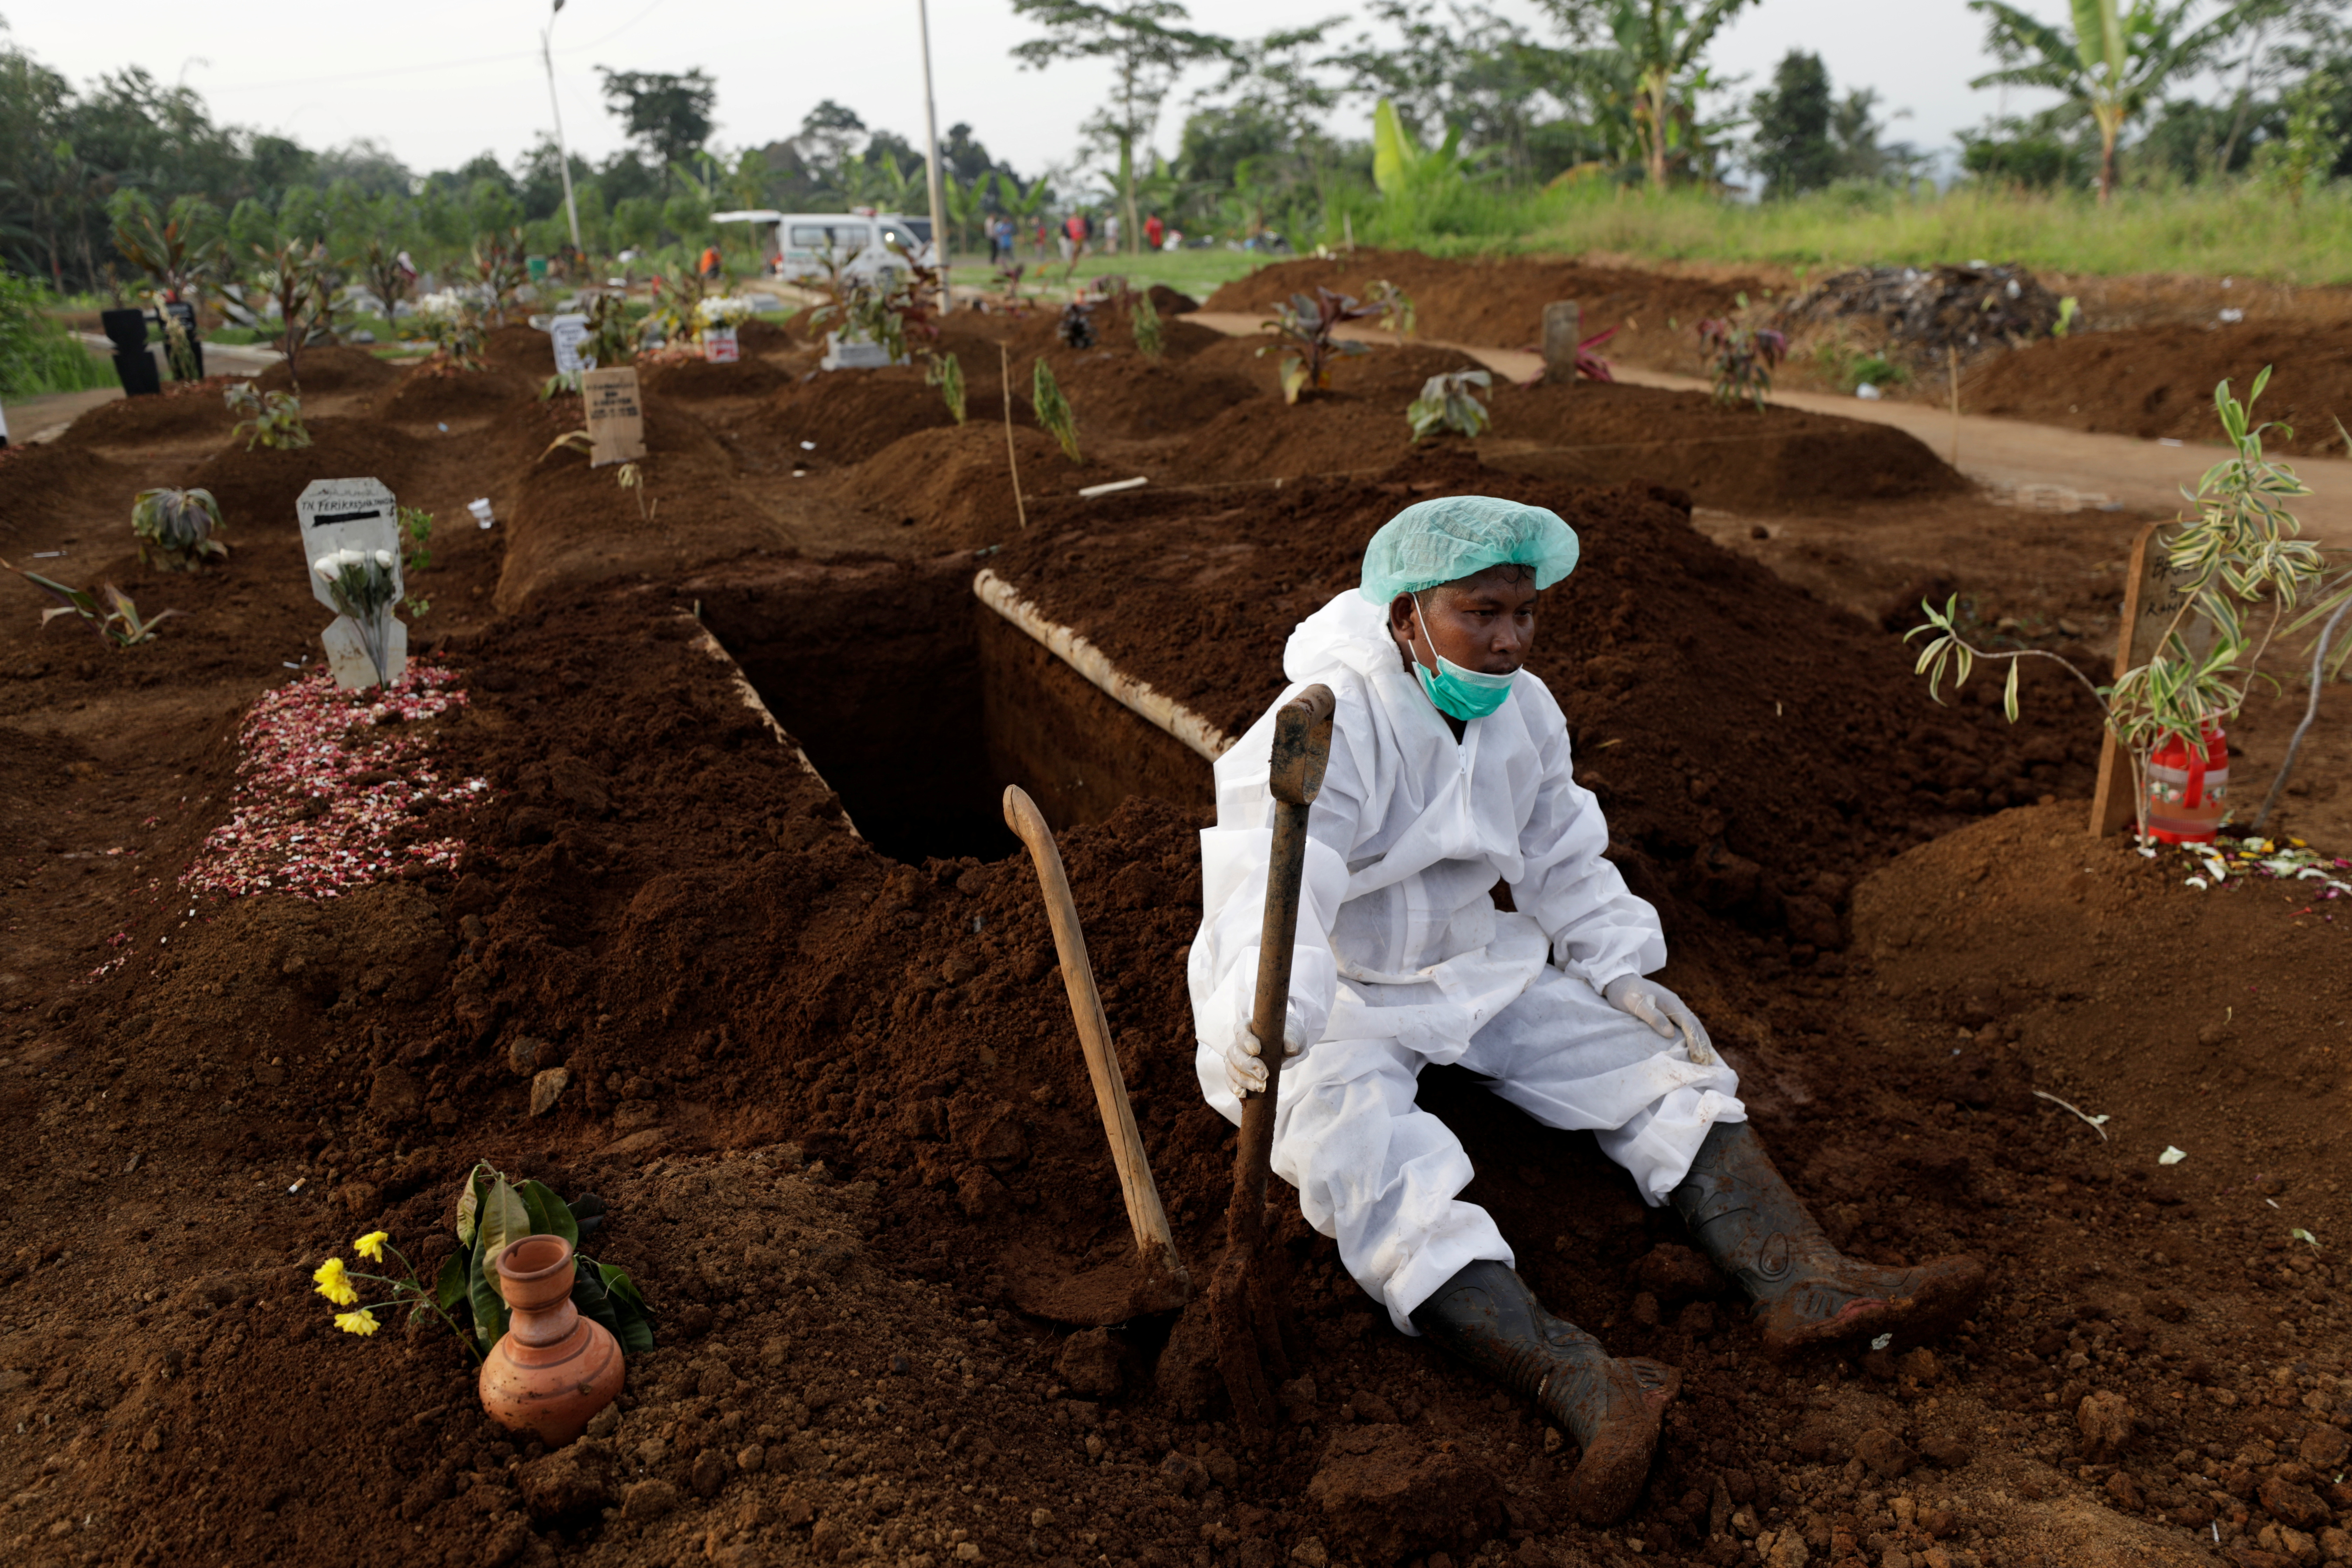 A gravedigger wearing personal protective equipment rests after the burial of 64-year-old Yoyoh Sa'diah who passed away due to complications related to COVID-19 whilst isolating at her home in Bogor, West Java province, Indonesia, July 8, 2021. REUTERS/Willy Kurniawan/File Photo